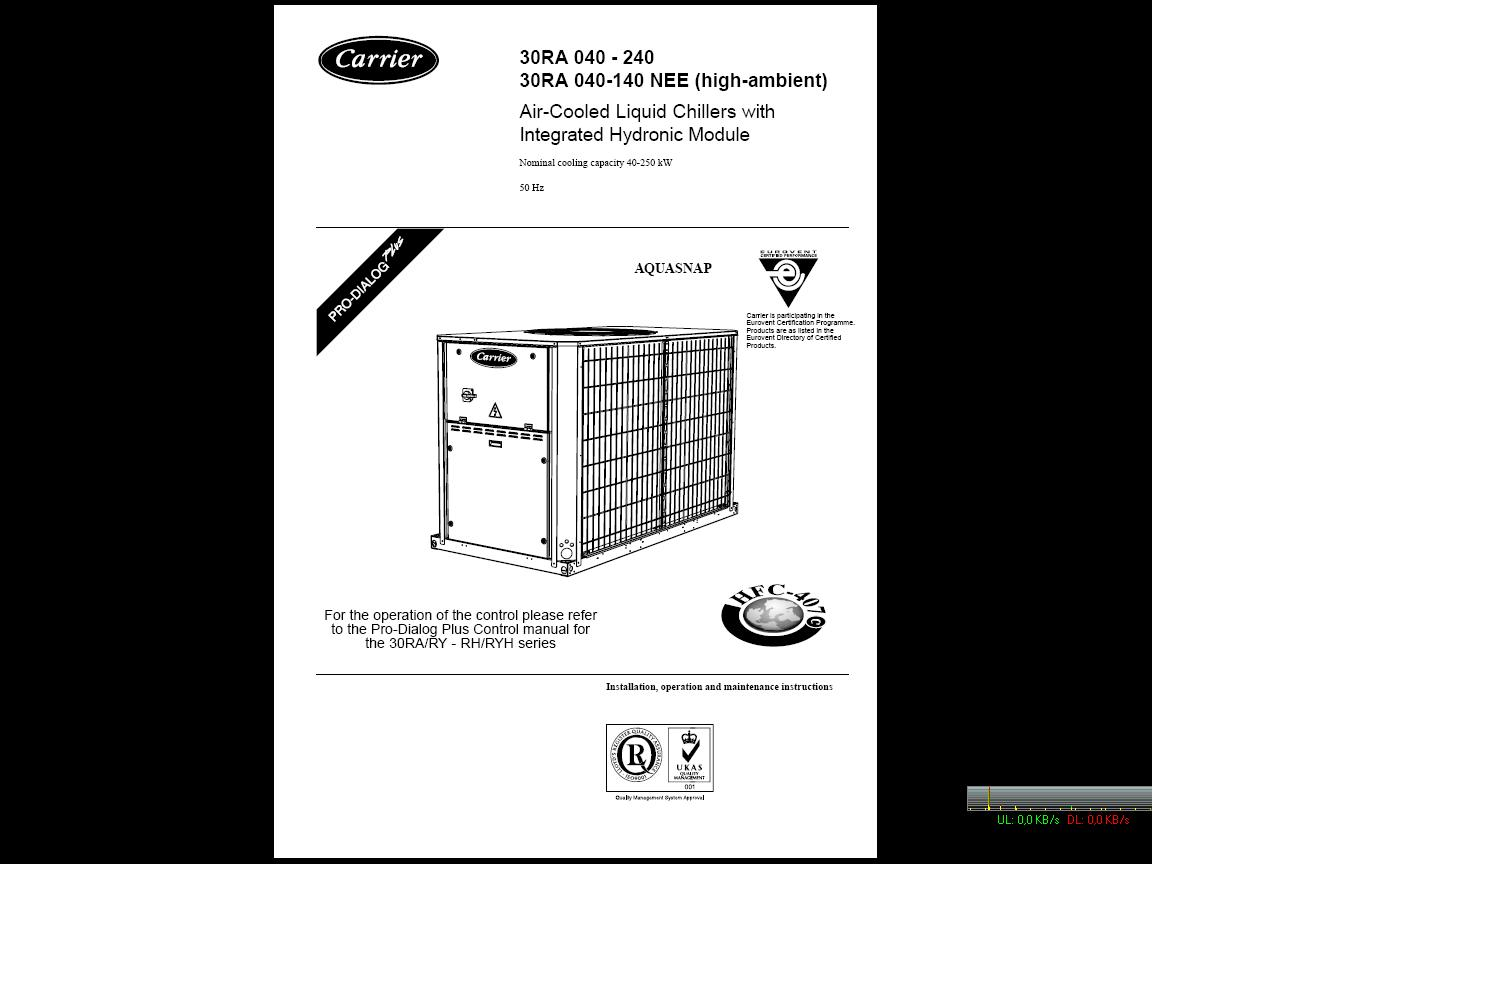 carrier electric furnace wiring diagram 98 4runner factory radio for 30rb